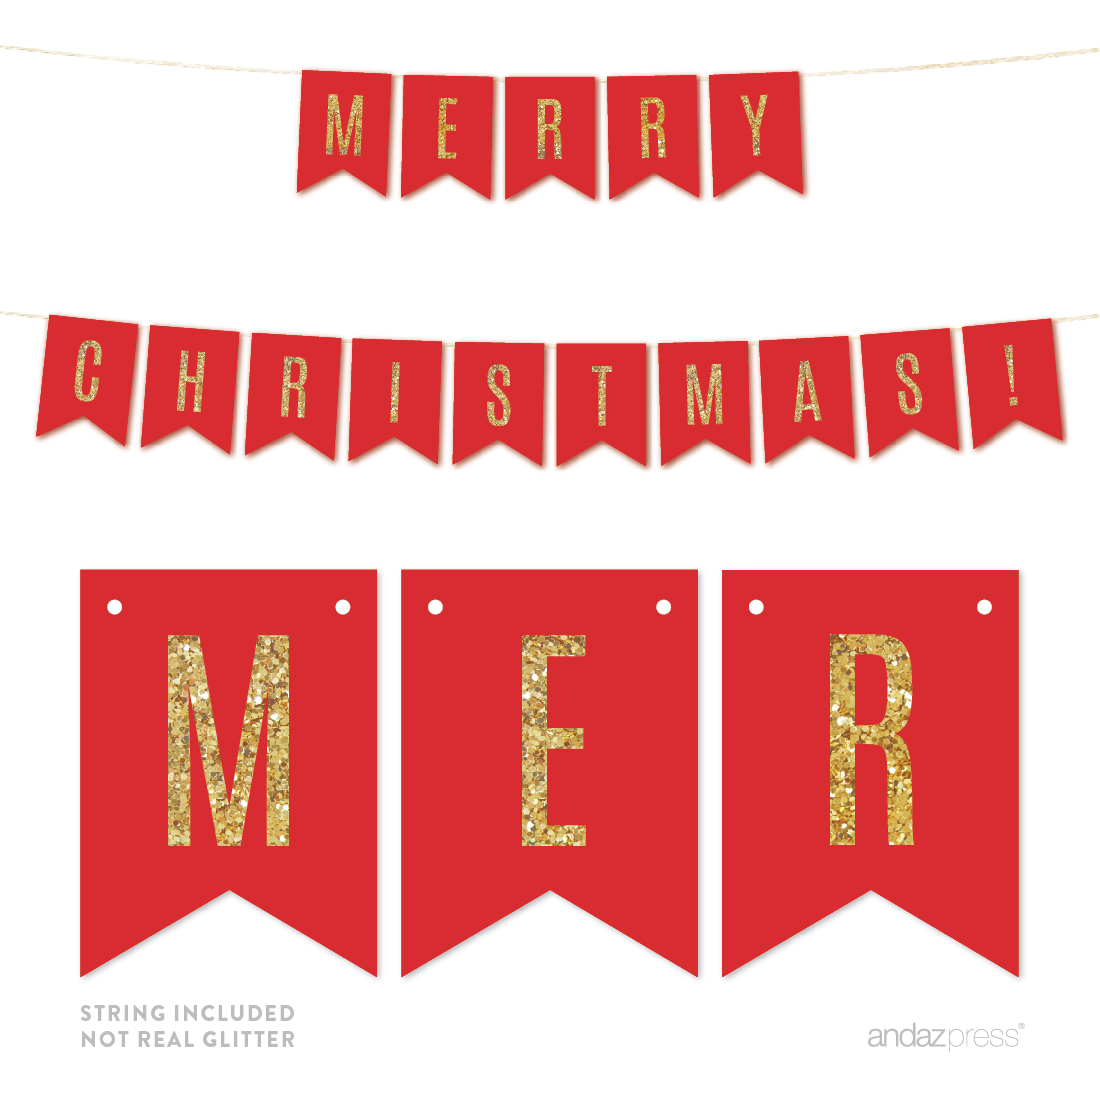 Merry Christmas! Gold Glitter Holiday Hanging Pennant Party Banner